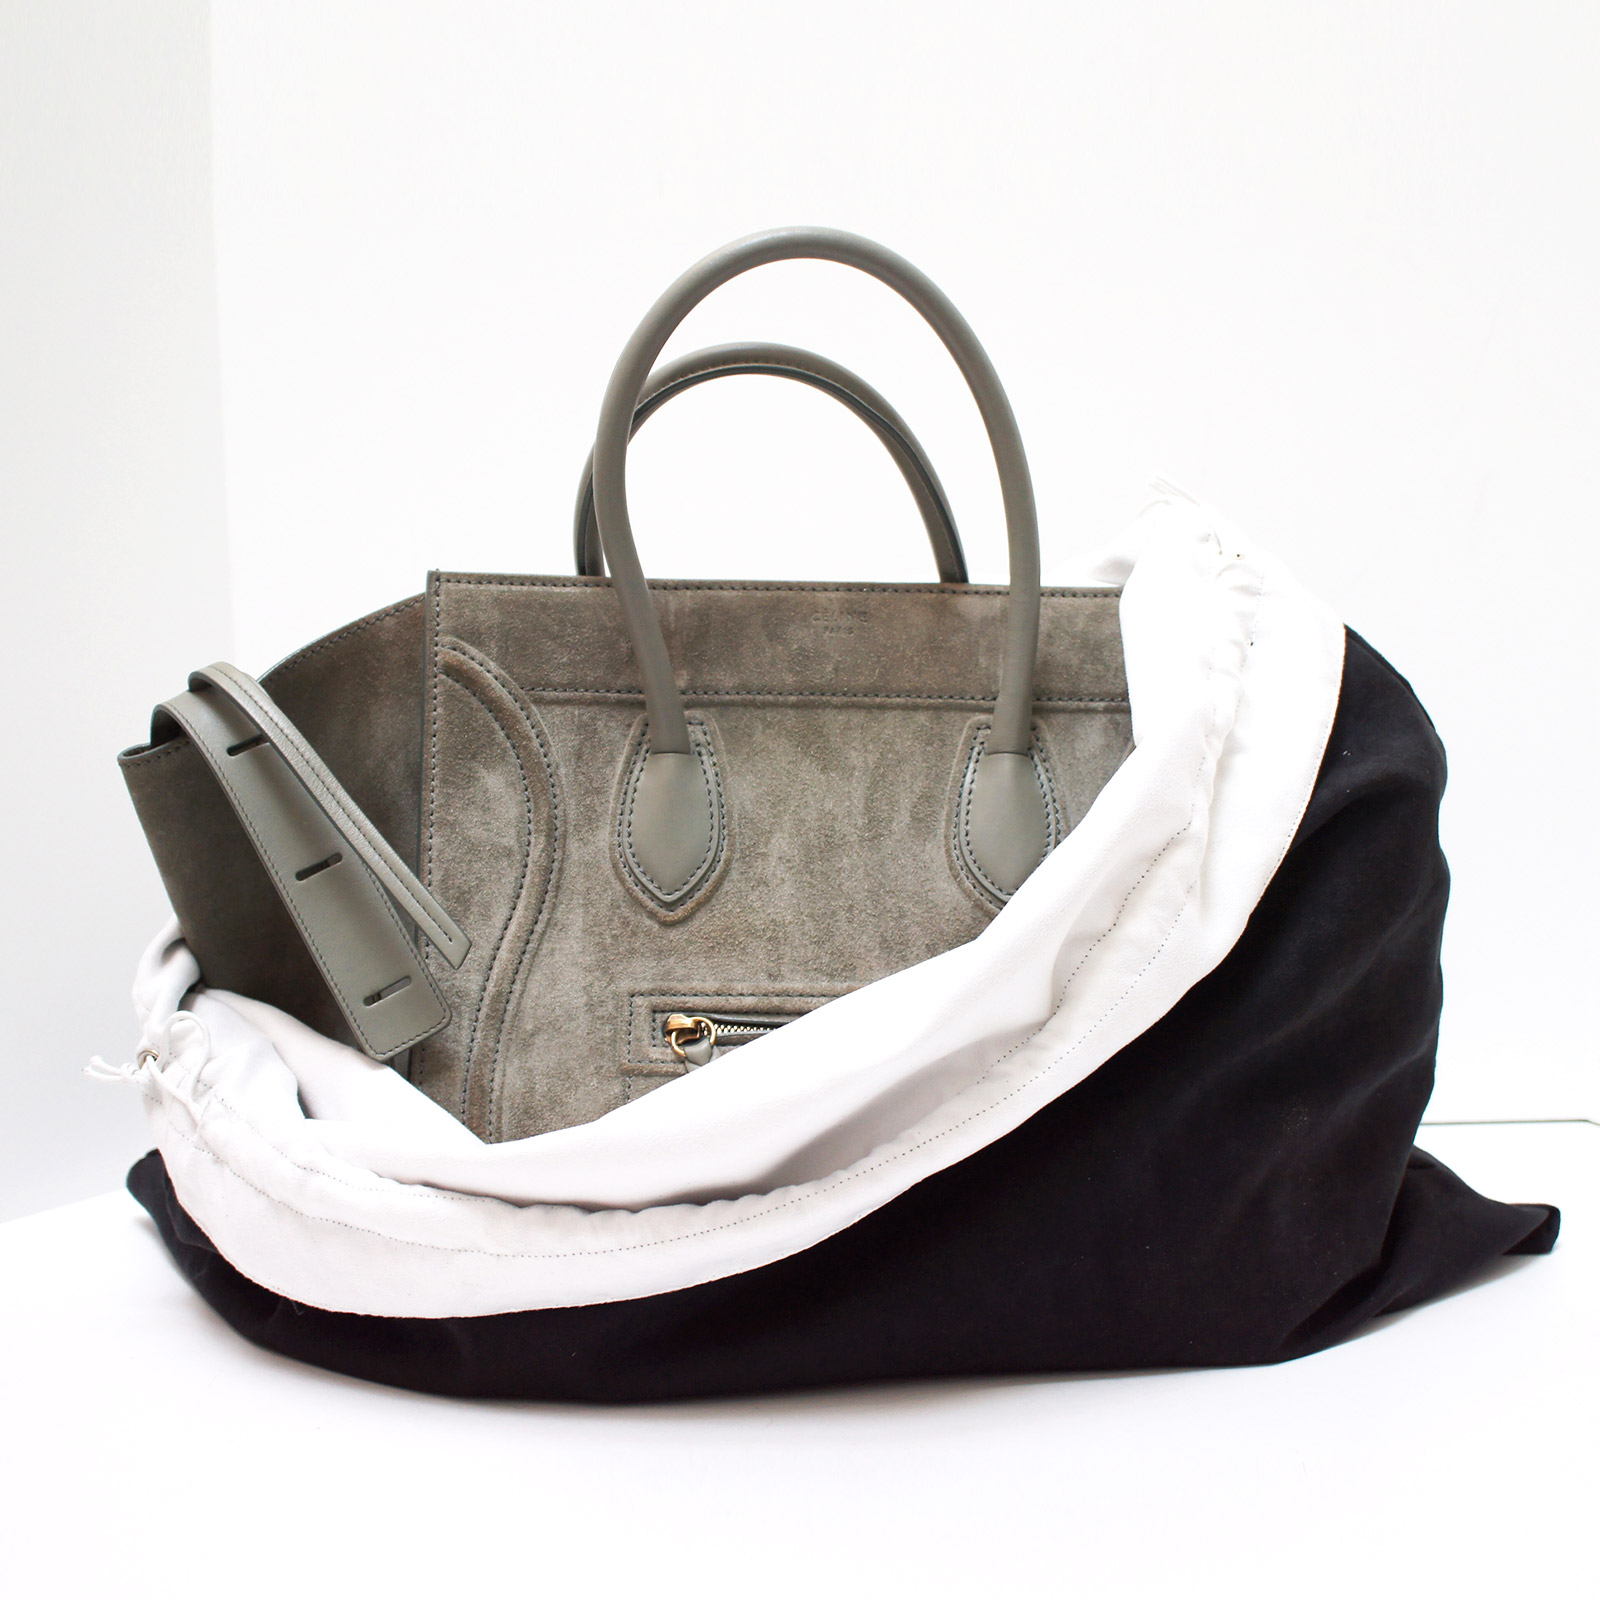 Details About Luxurious Reversible Black White Dust Bag Cover Large 23 75 W X 19 5 H